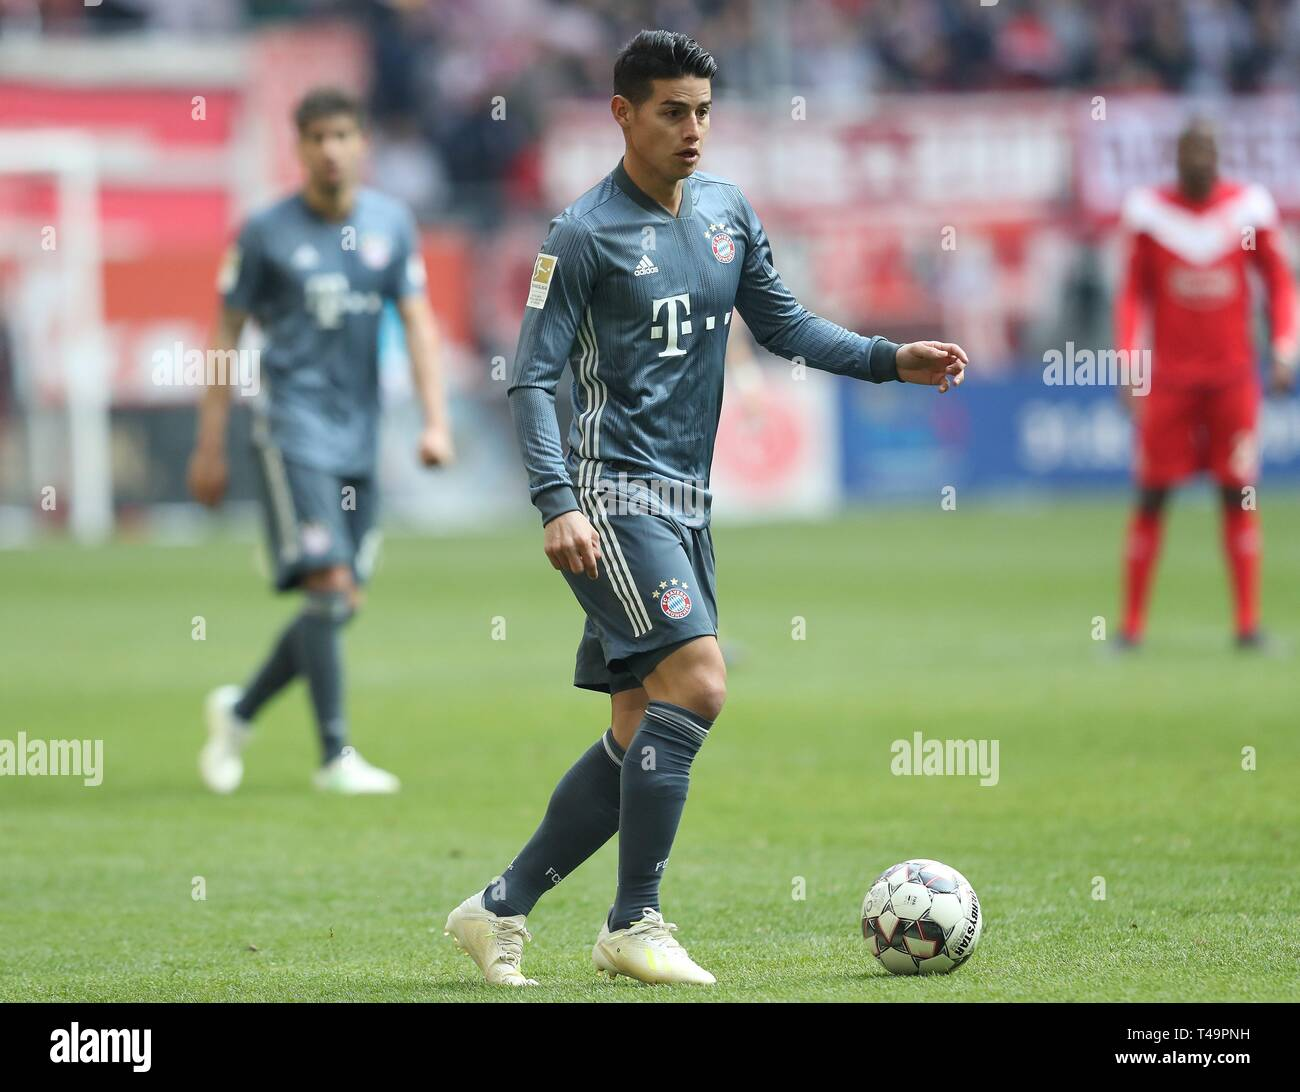 firo: 14.04.2019, Fuvuball, 2018/2019, 1.Bundesliga: Fortuna Dvºsseldorf, Duesseldorf - Bavaria Munich Munich single action James Rodriguez | usage worldwide Stock Photo